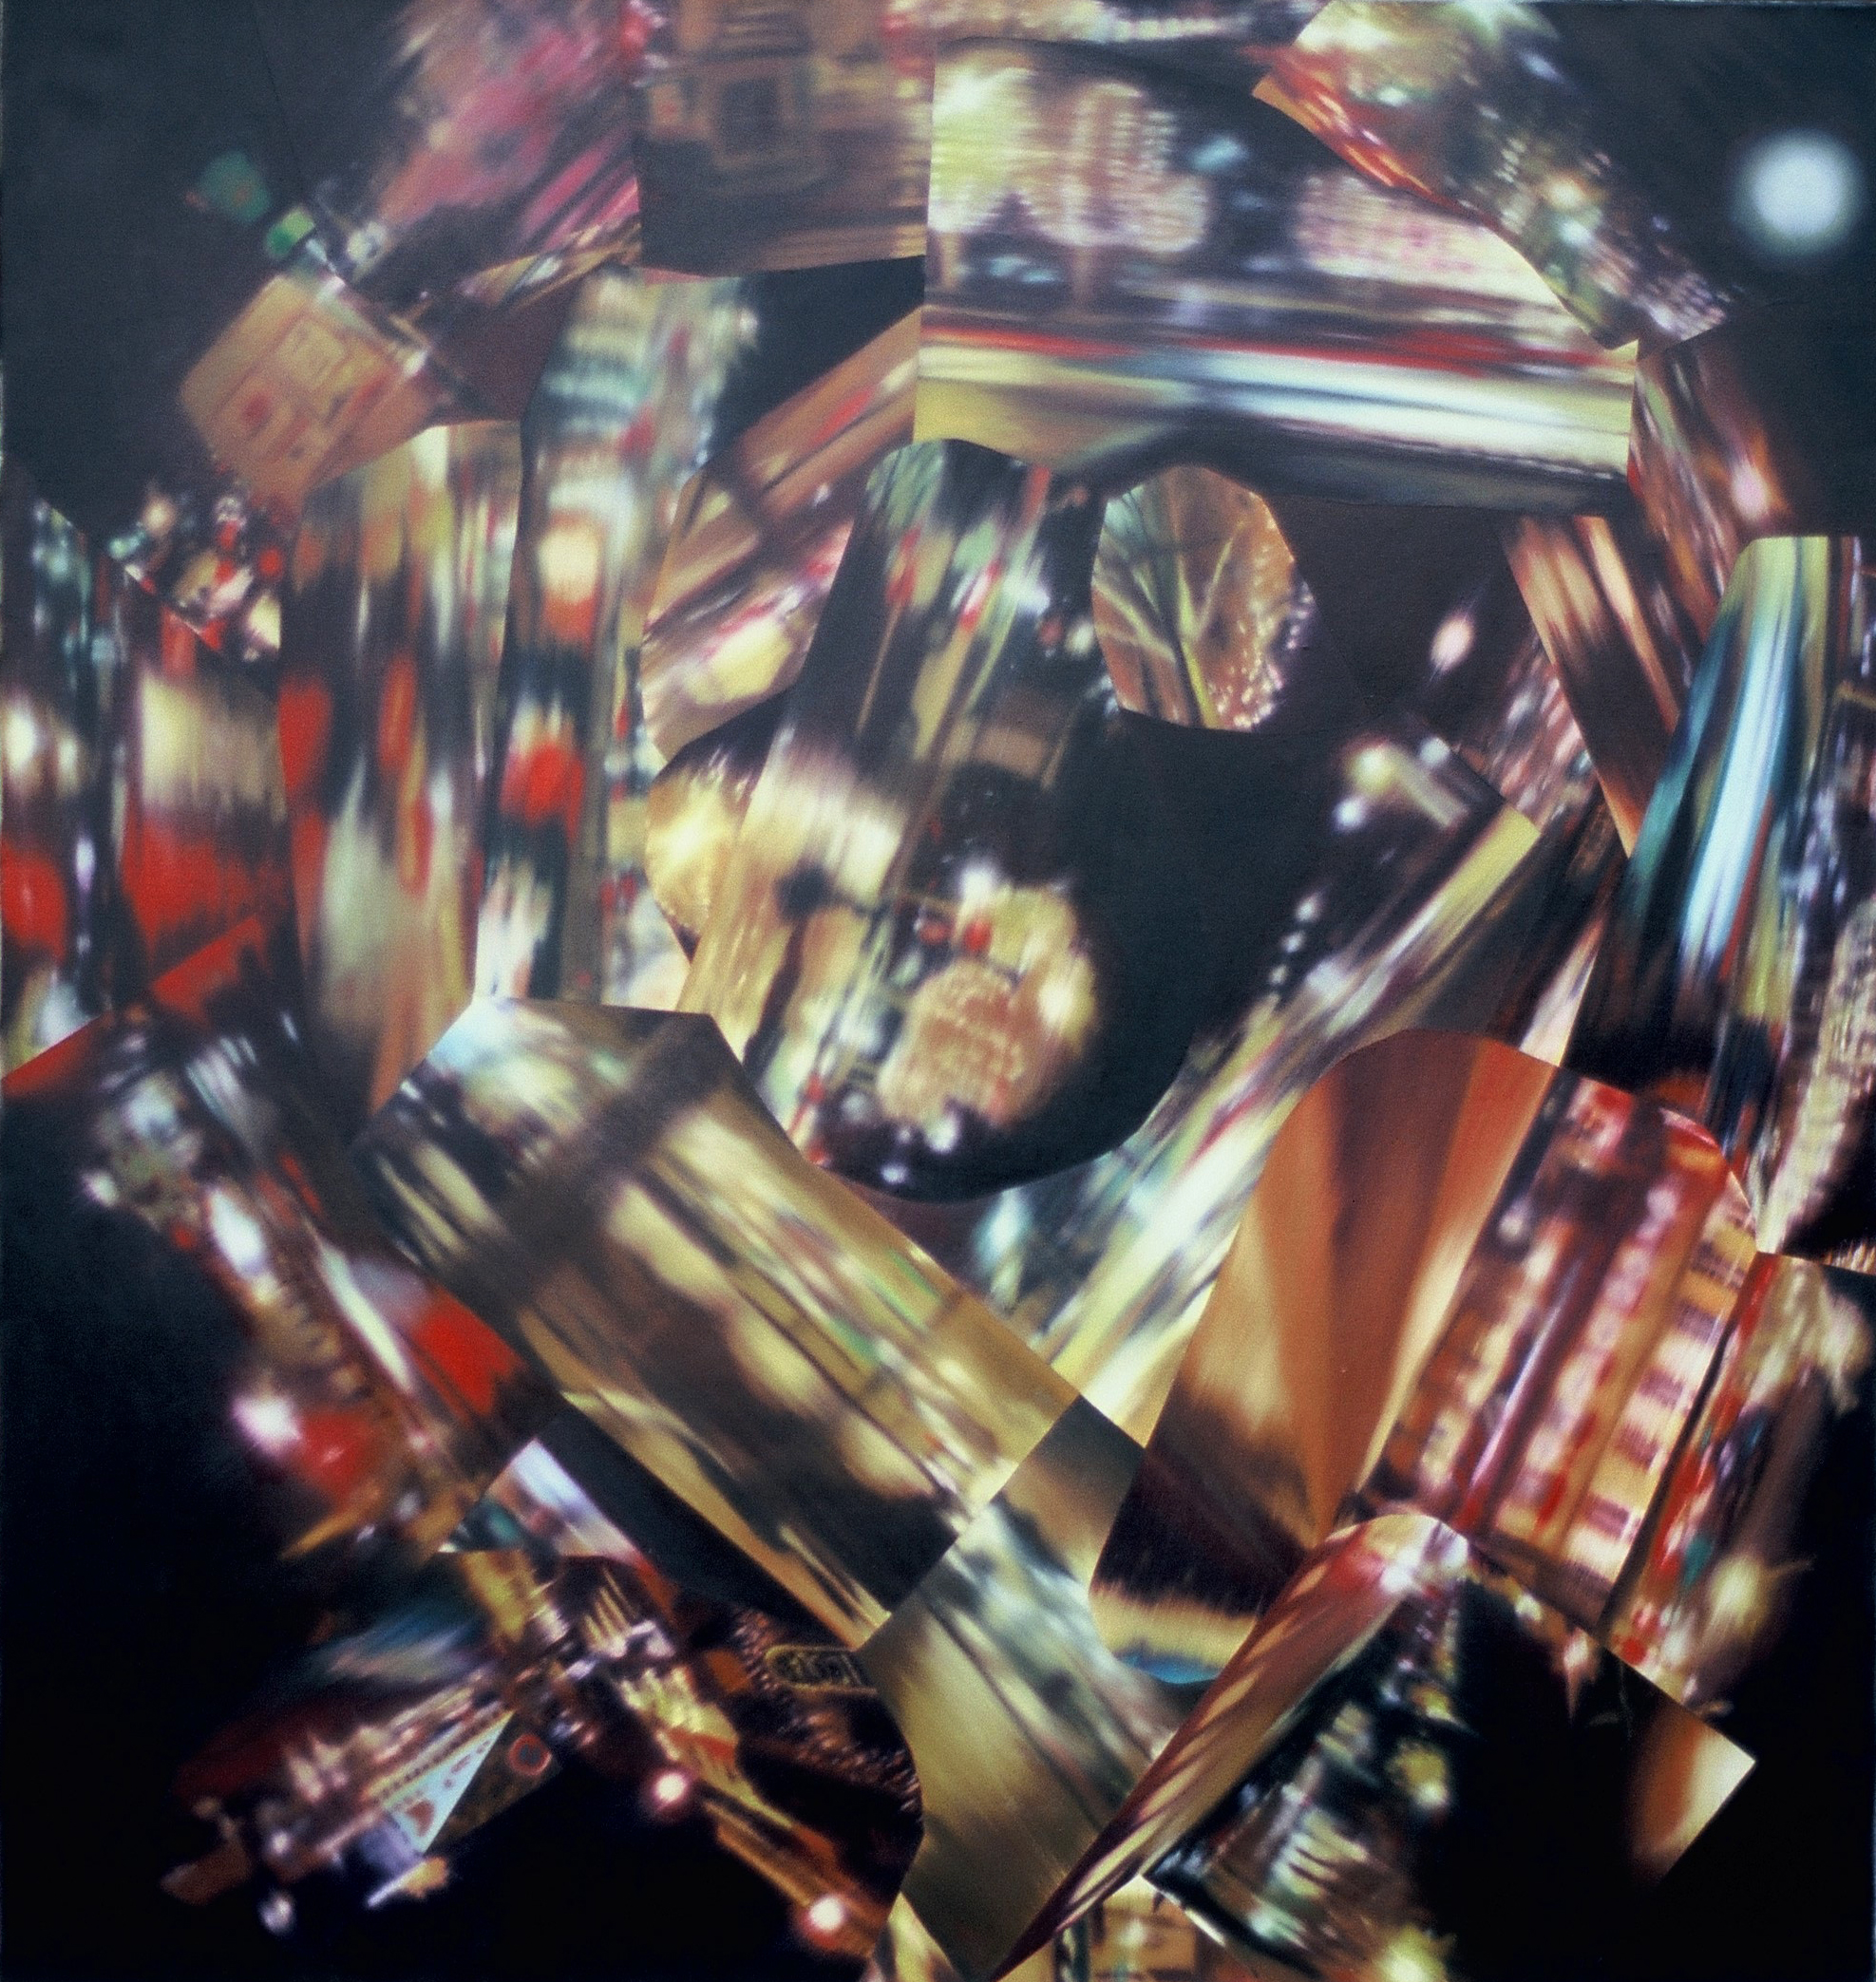 Untitled (Paris by Night) , 2003, oil on canvas, 164 x 140cm. Private collection, France